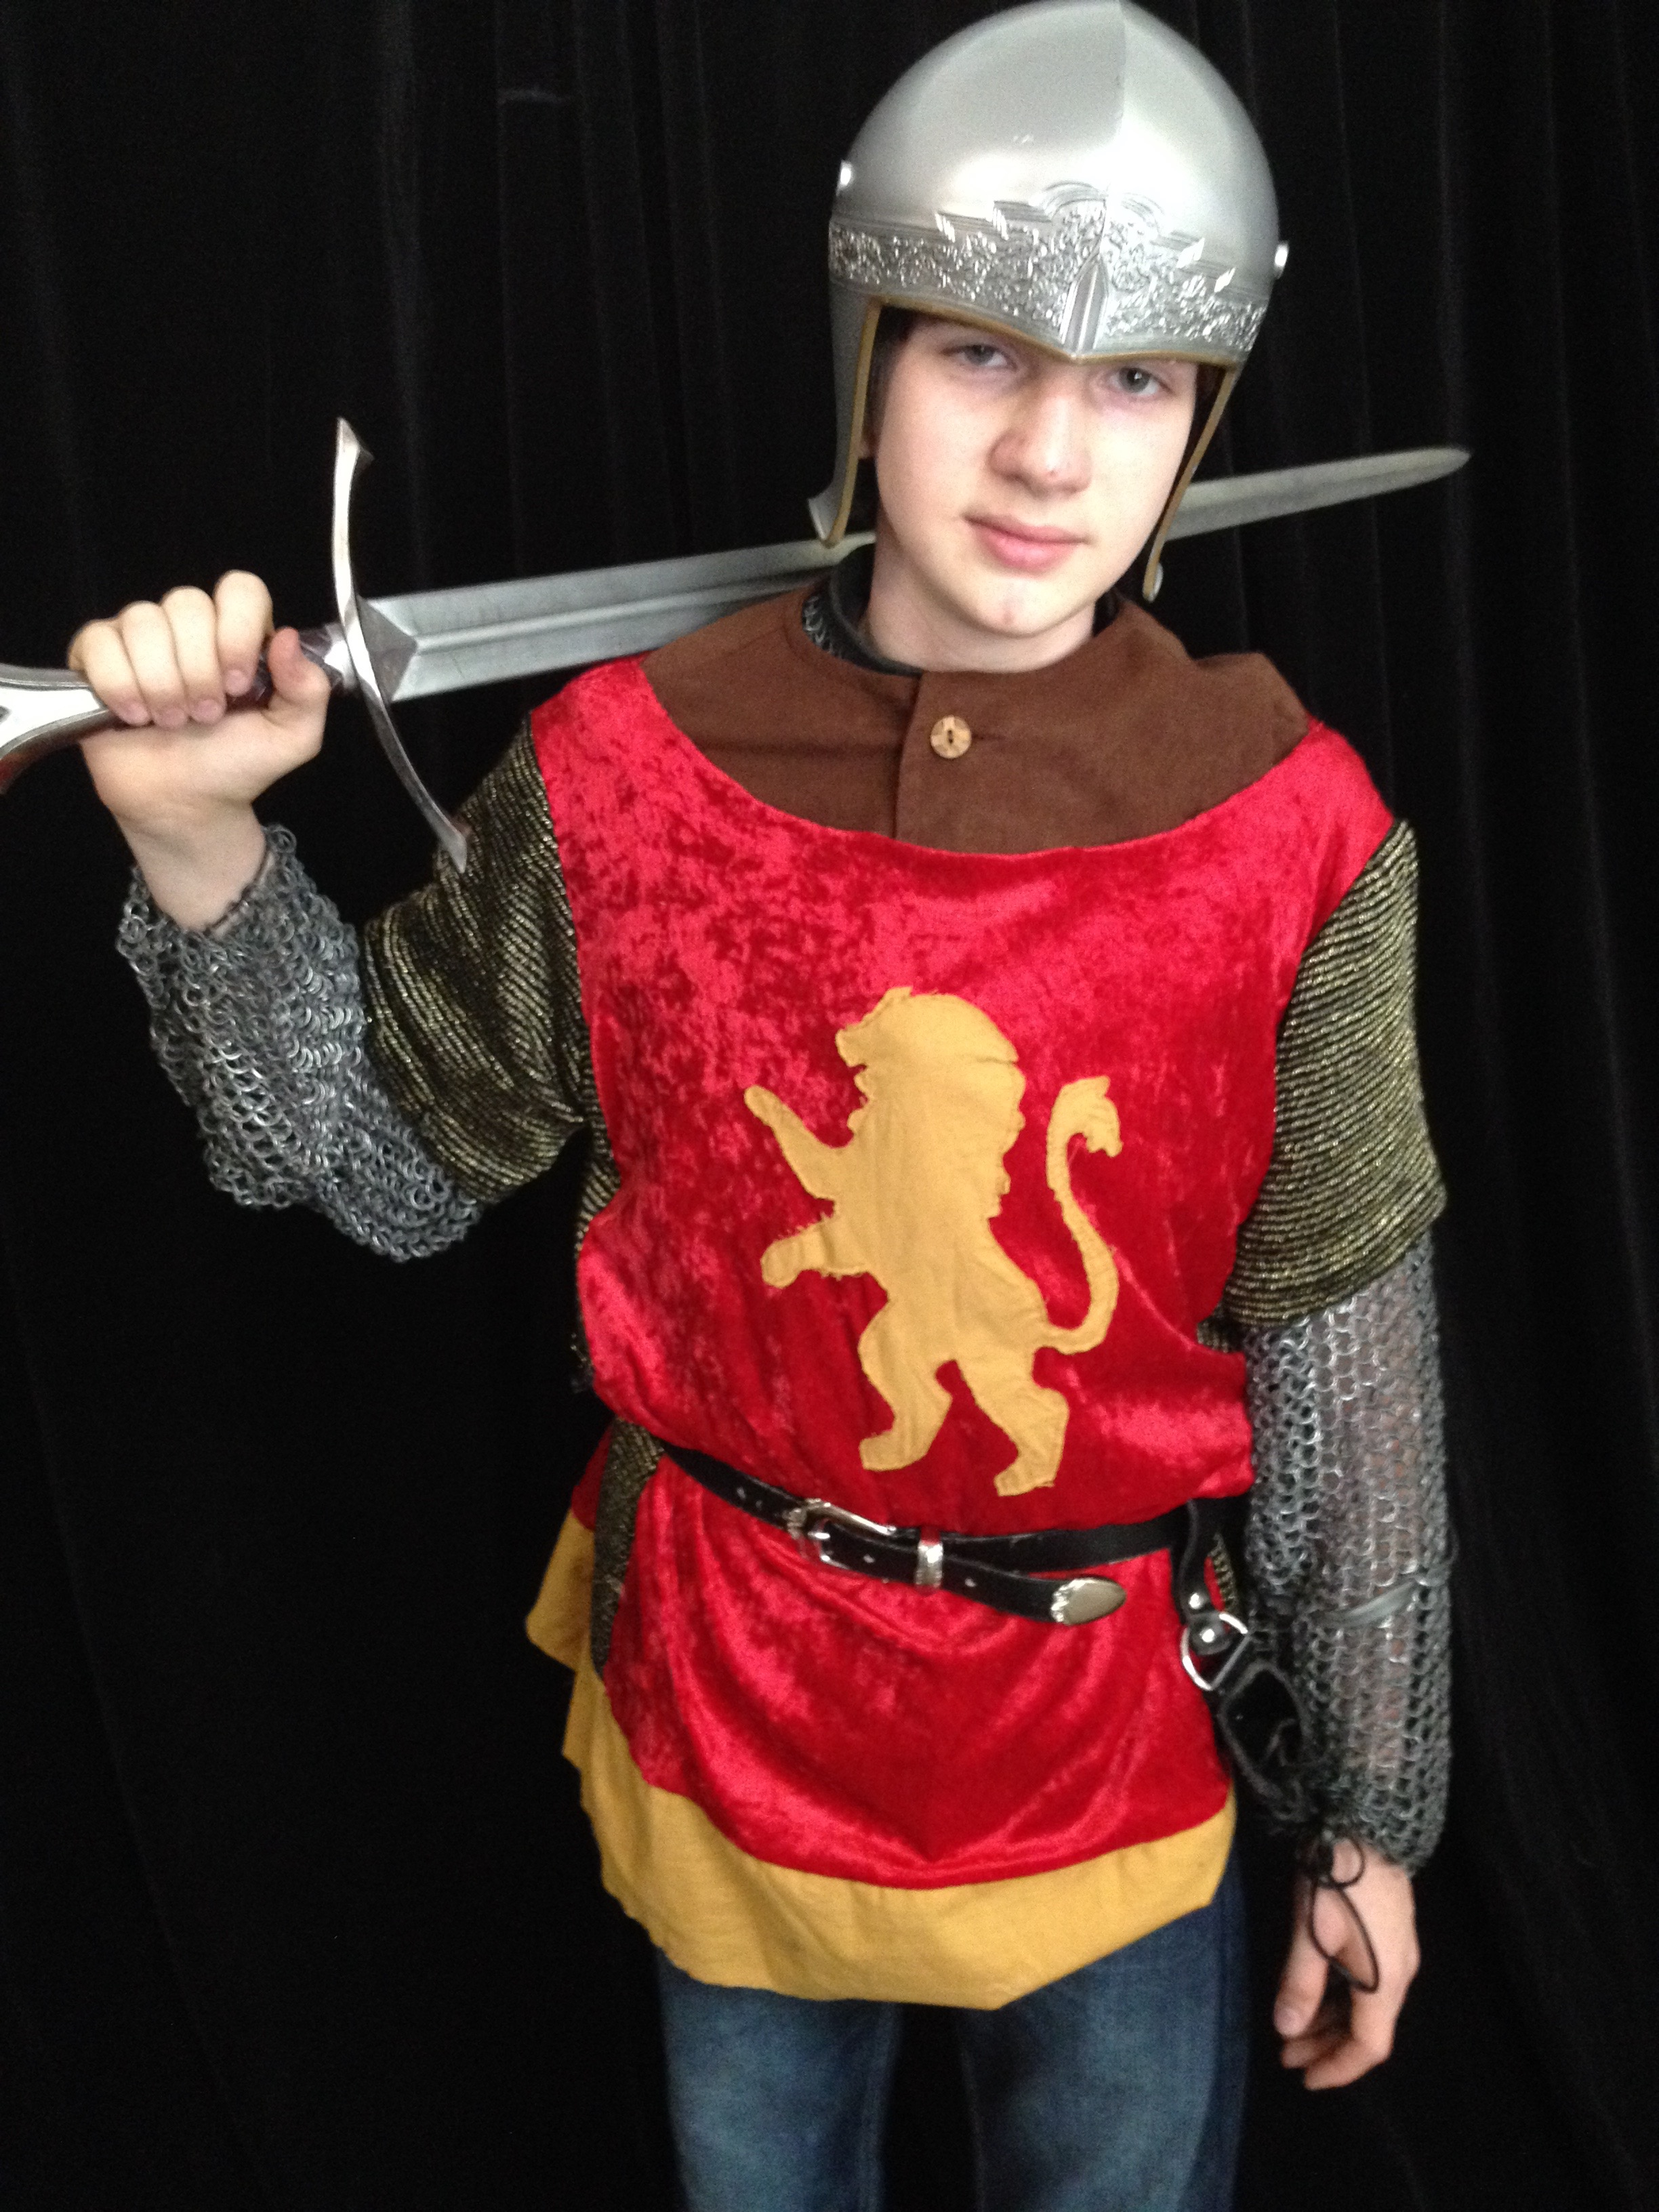 Narnia LWW Edmund Pevensie Battle Outfit vs2